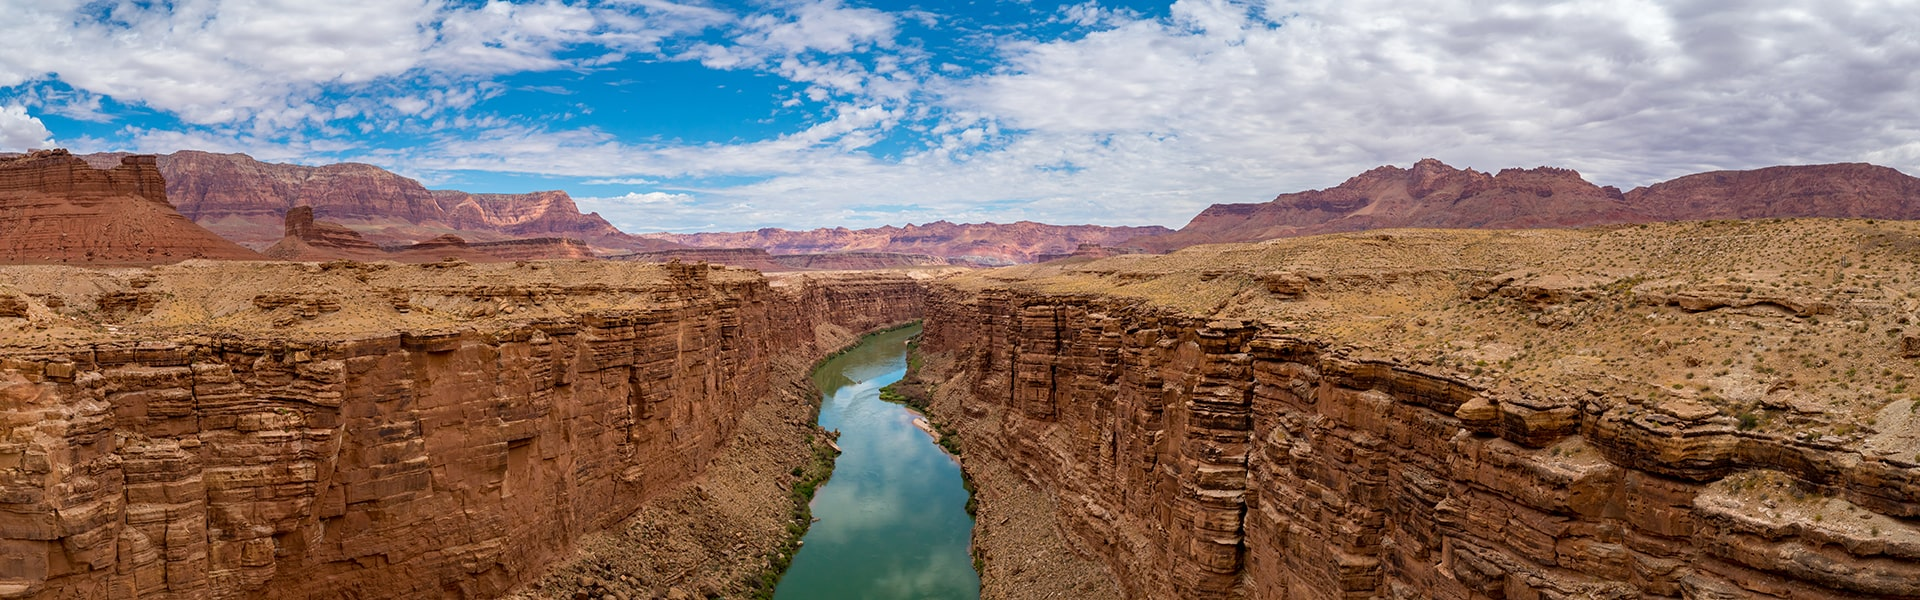 Water and climate change: the Colorado River Basin case study